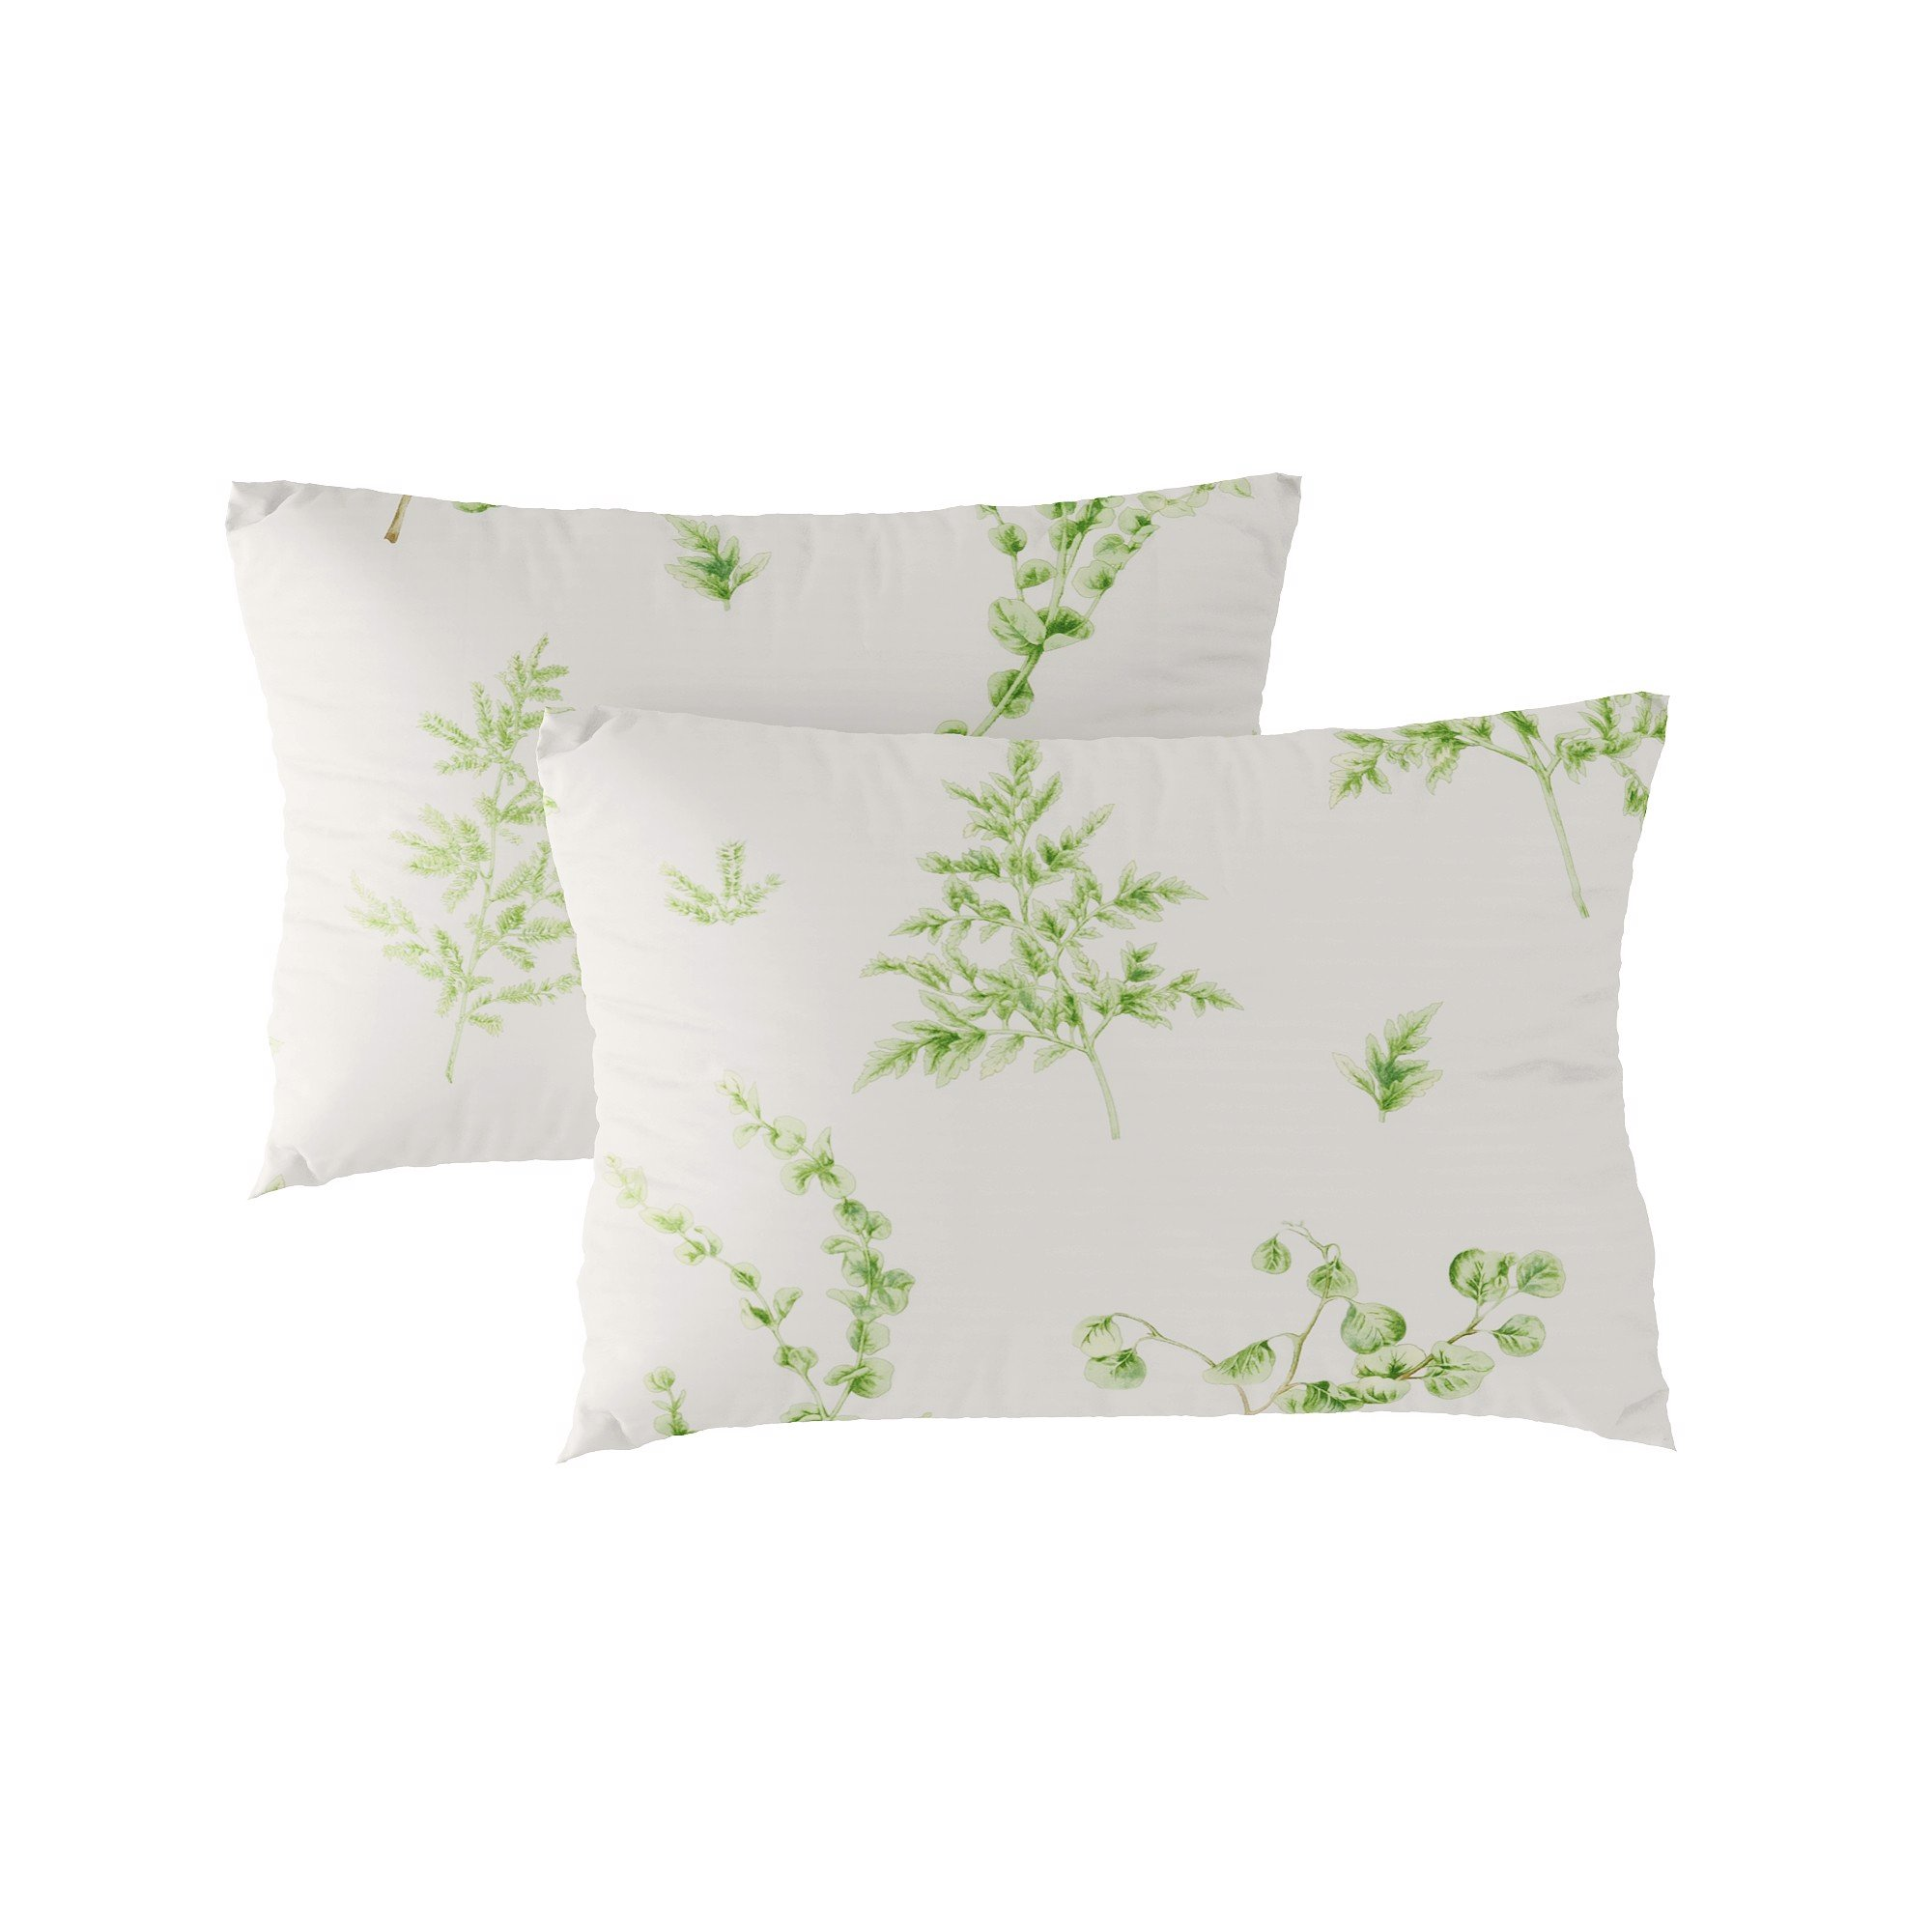 Pillow case 207 Leaf branch